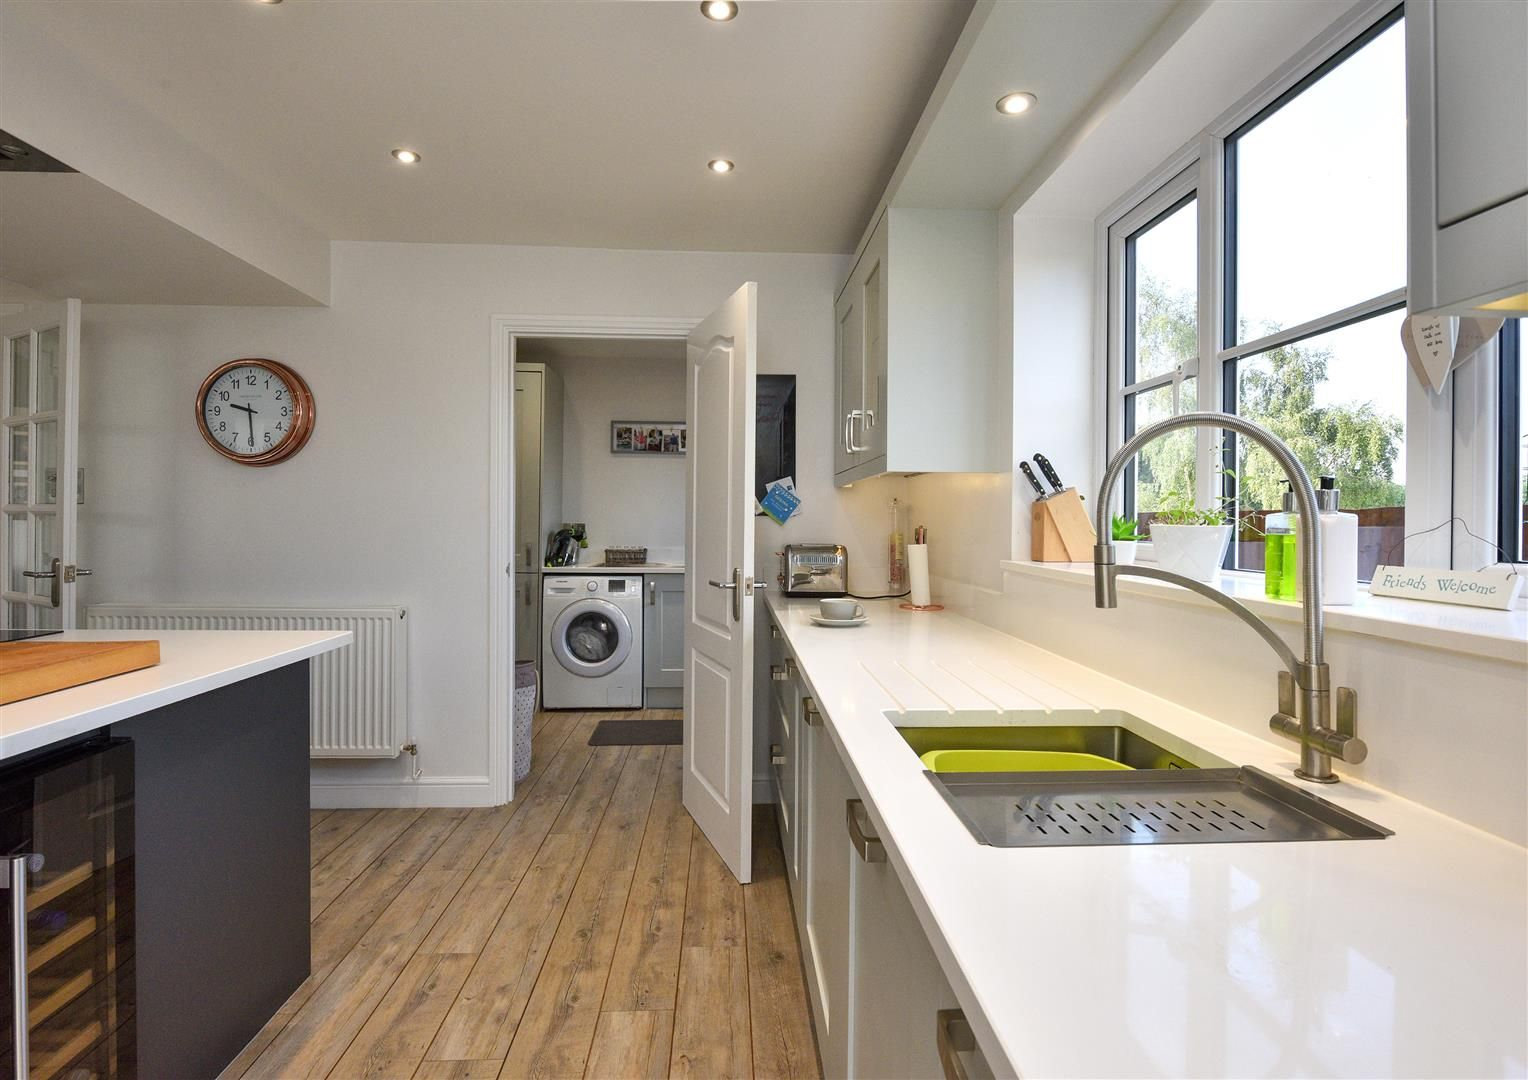 5 bed house for sale in Hagley  - Property Image 24